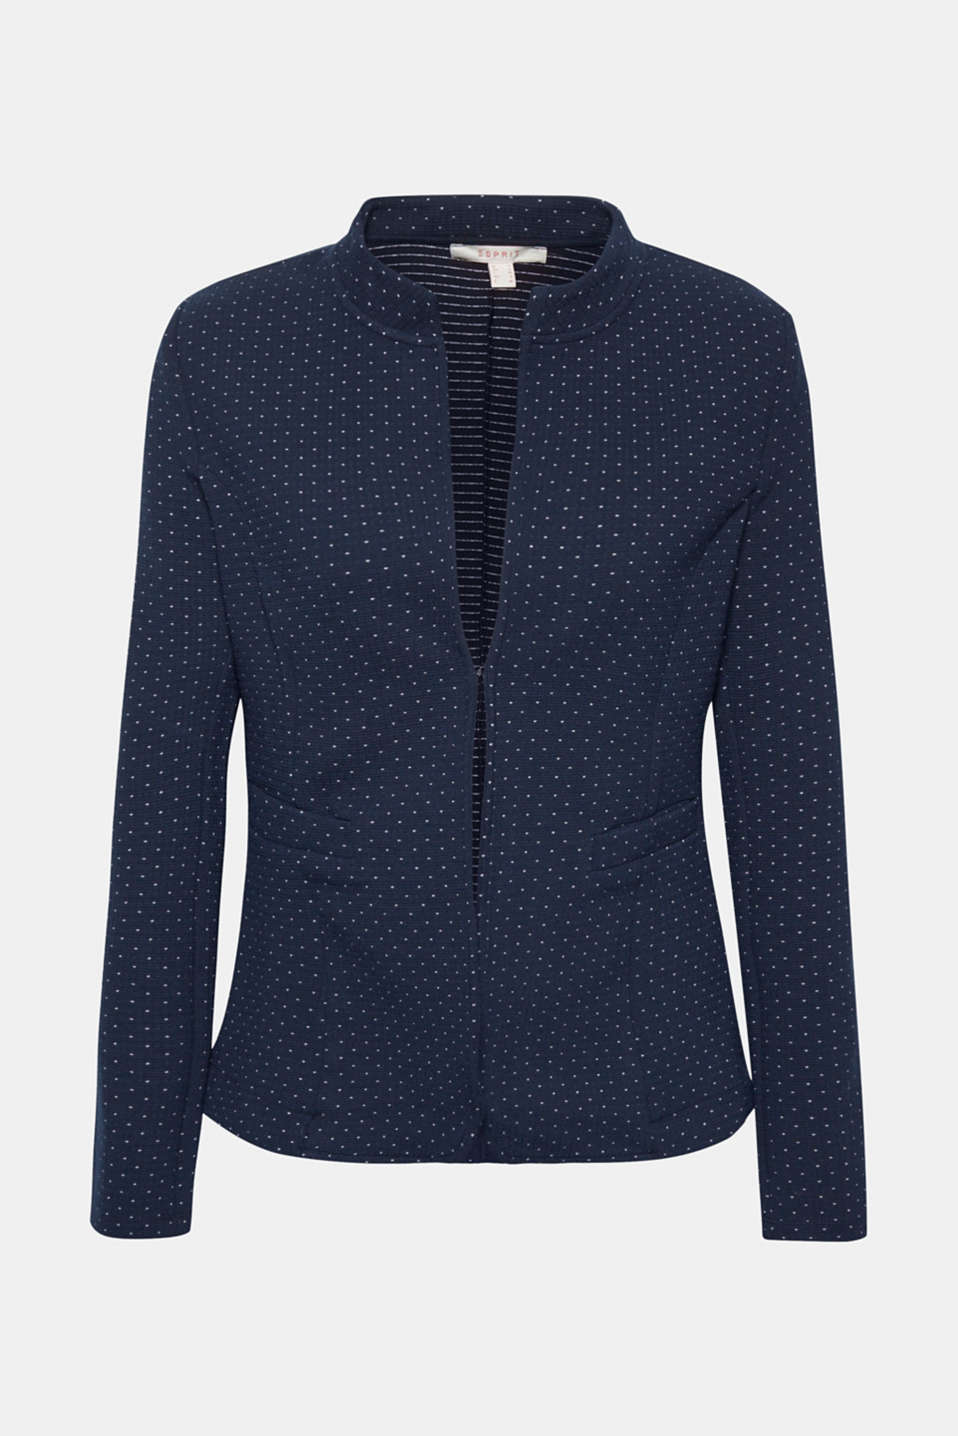 Jackets indoor knitted, NAVY, detail image number 9